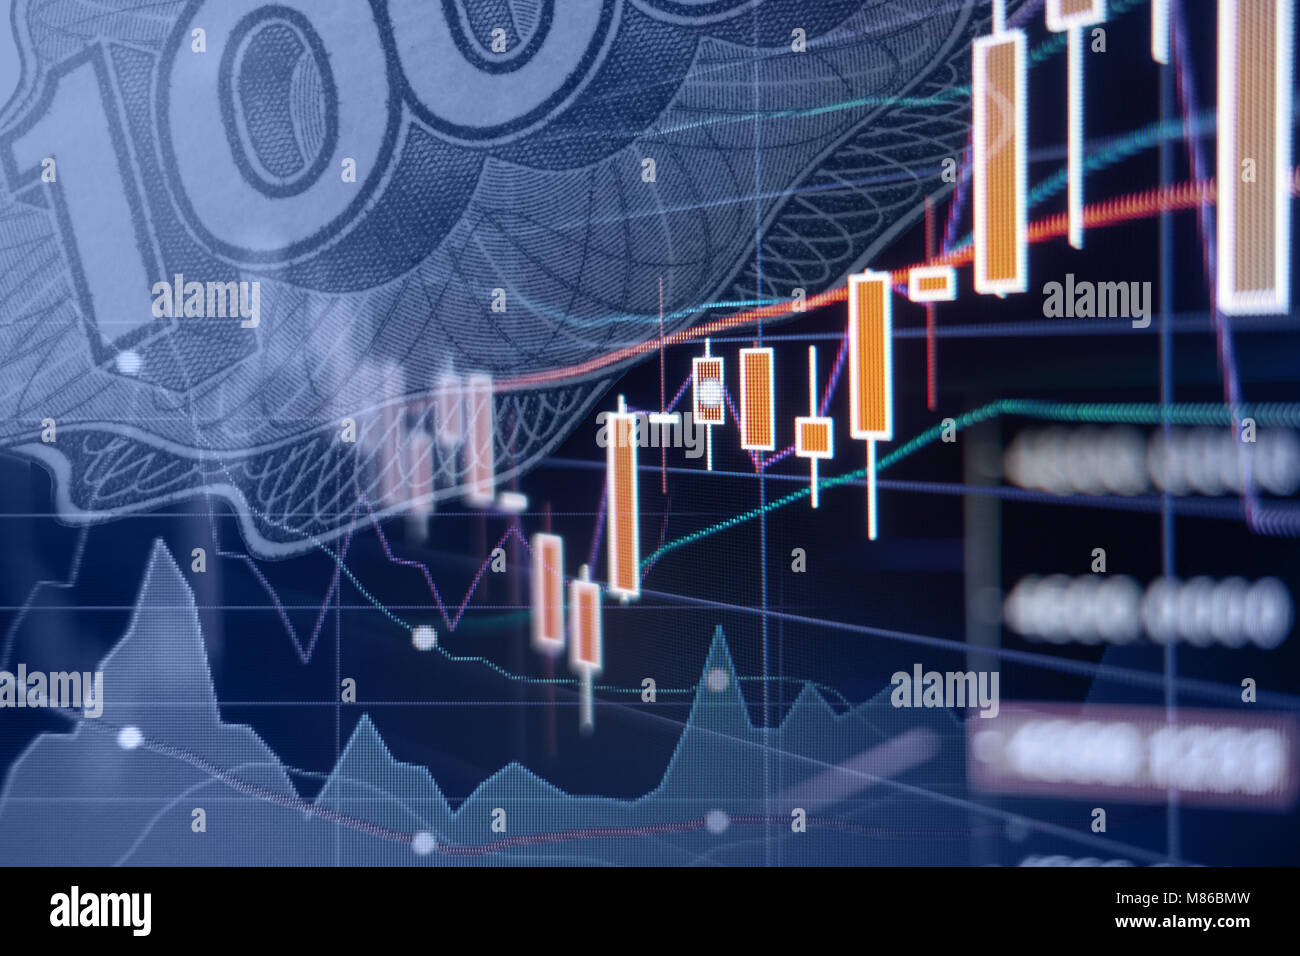 Economic growth - Stock market graphs and charts - Financial and business background Stock Photo